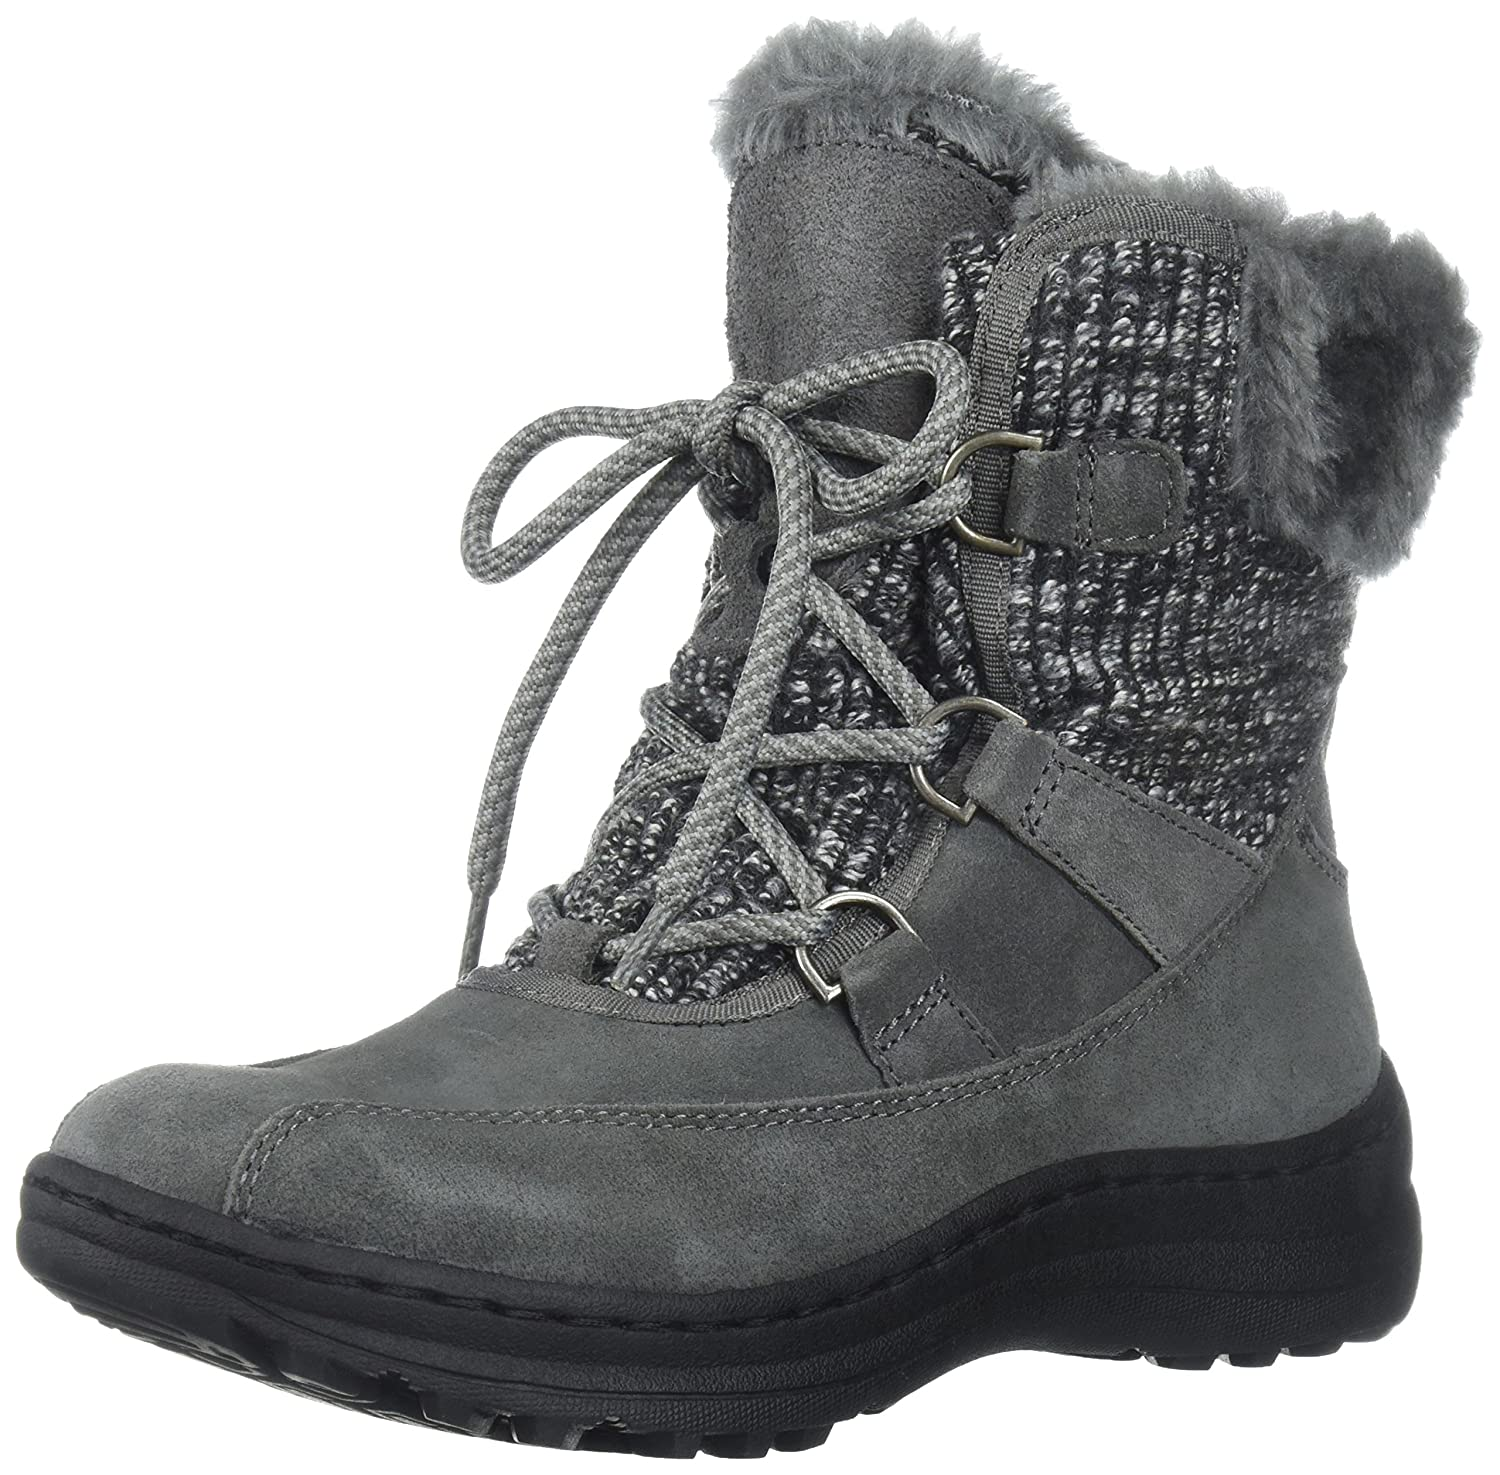 BareTraps Women's Aero Snow Boot, Black, 7.5 B(M) M US B071HTR5W1 9.5 B(M) 7.5 US|Dark Grey 0776a2